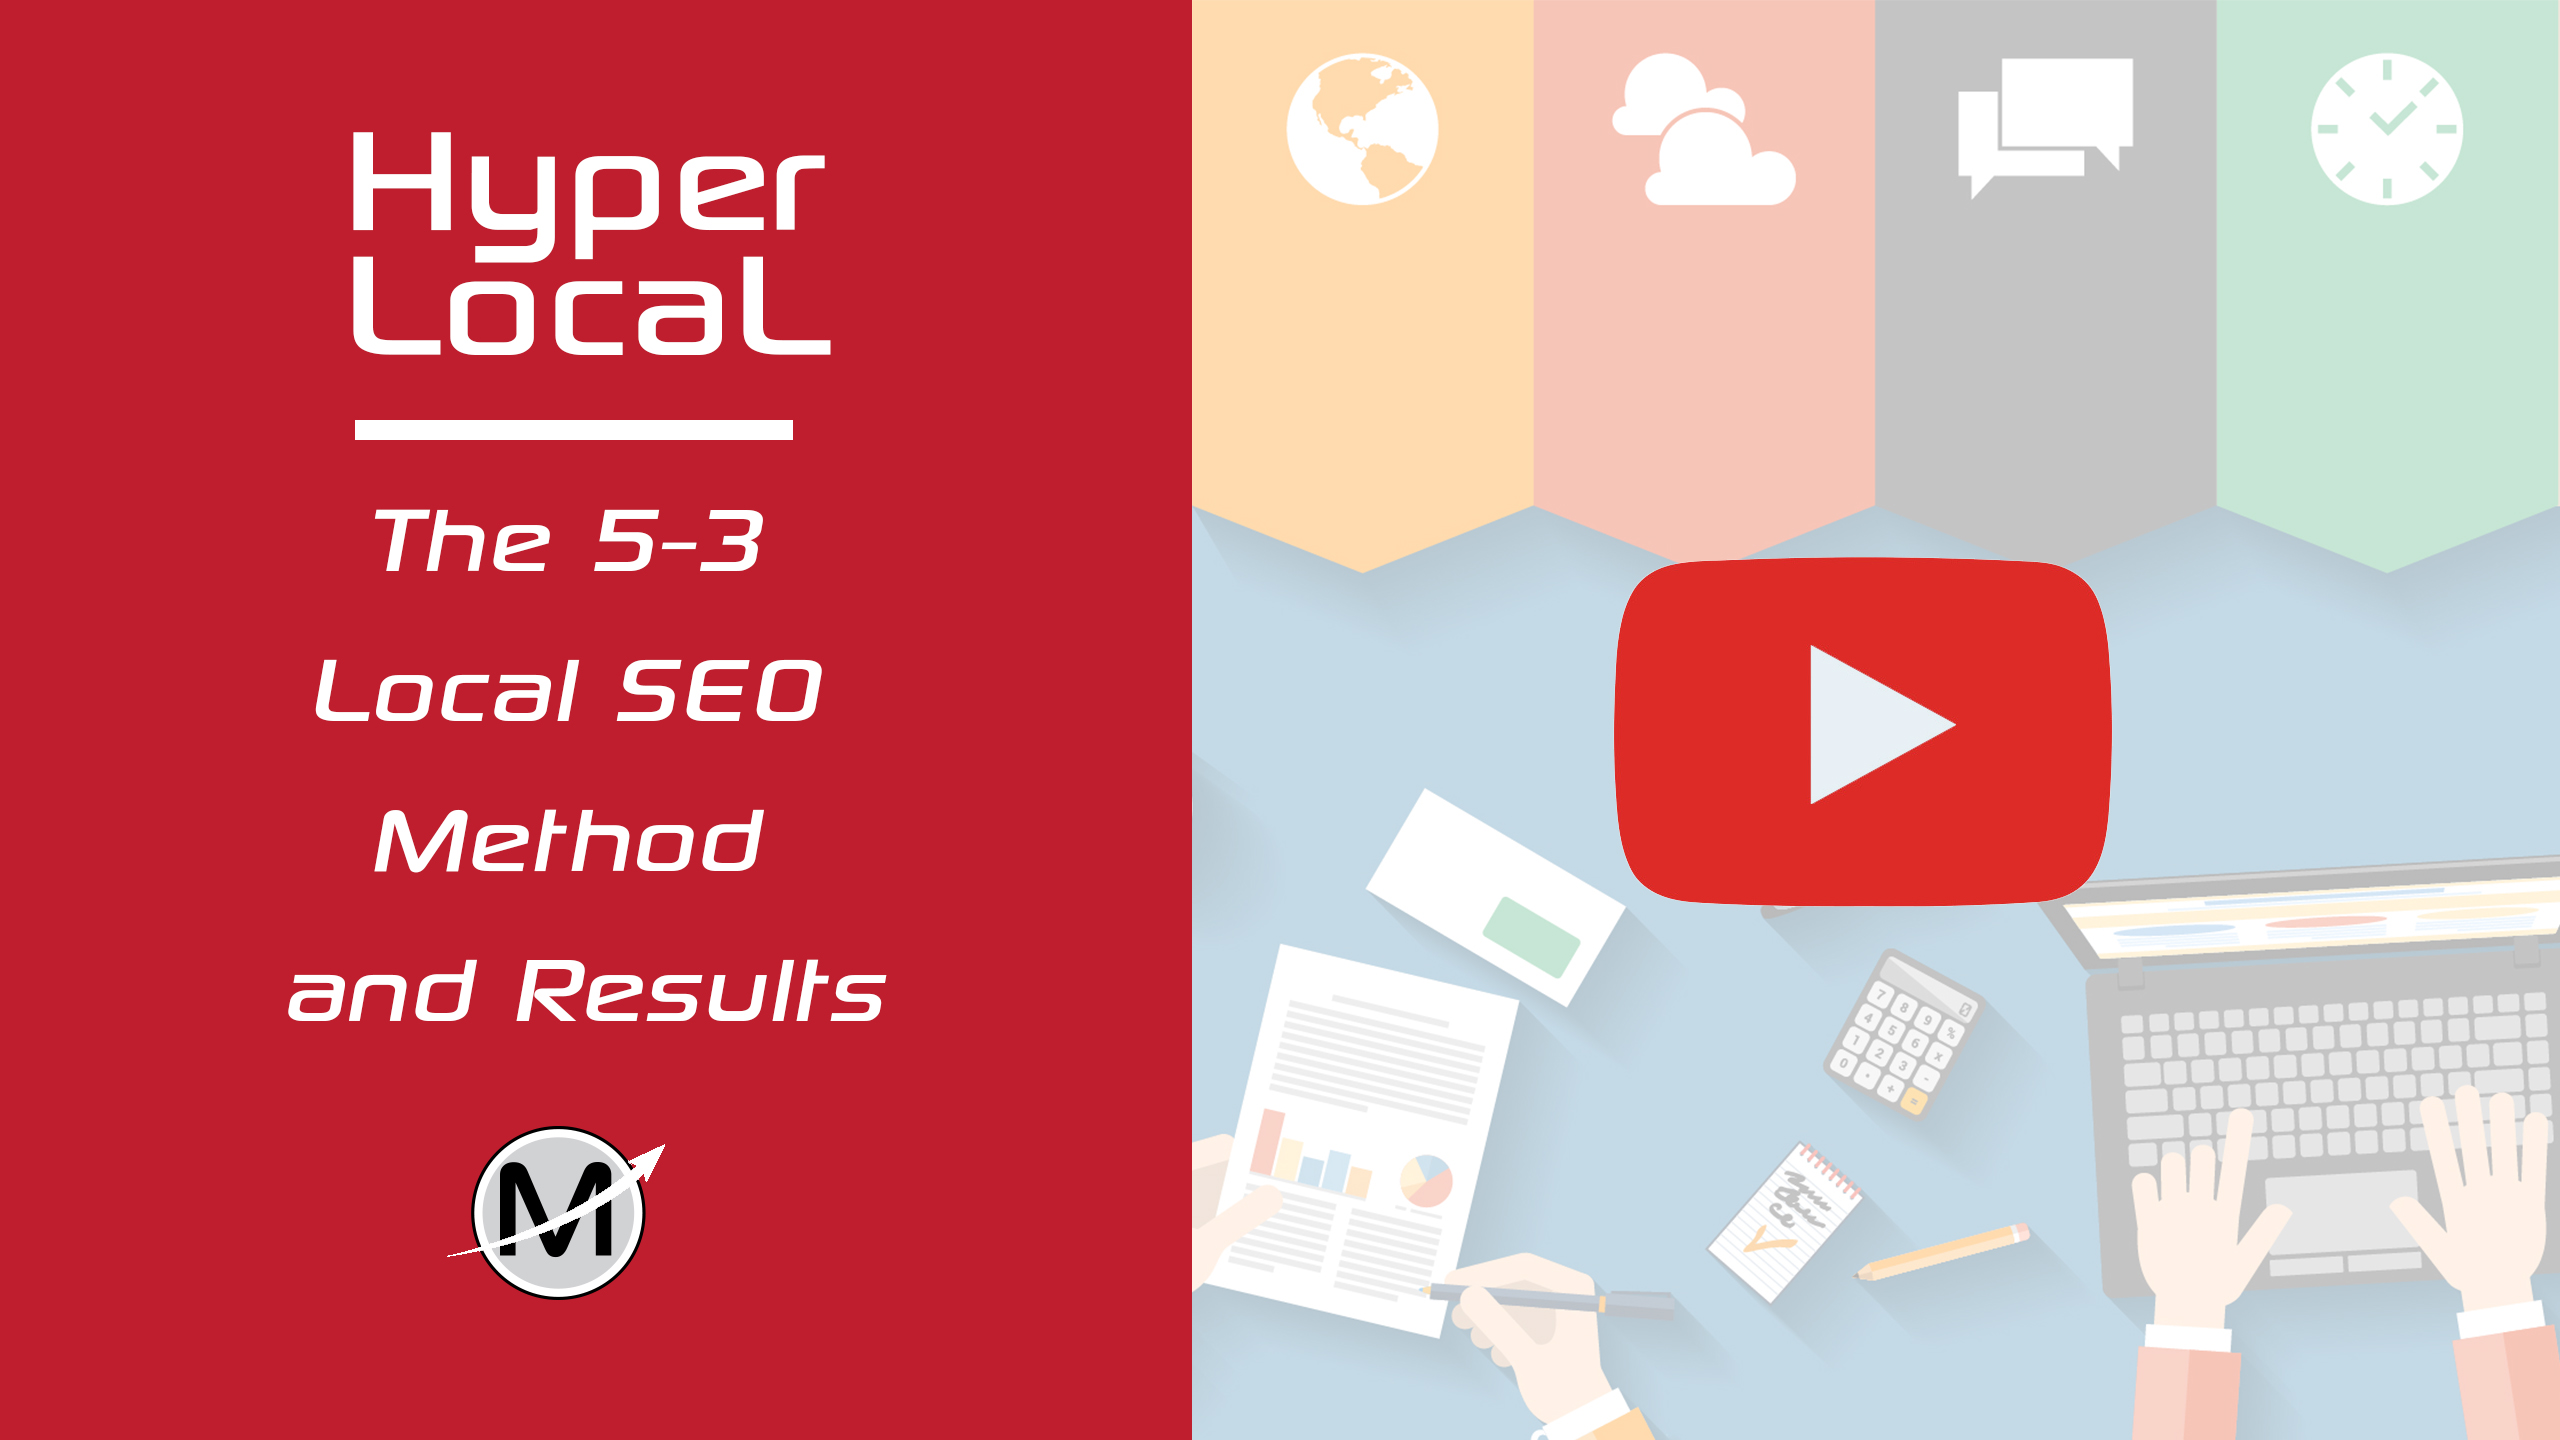 Local SEO - the 5-3 Method and Results